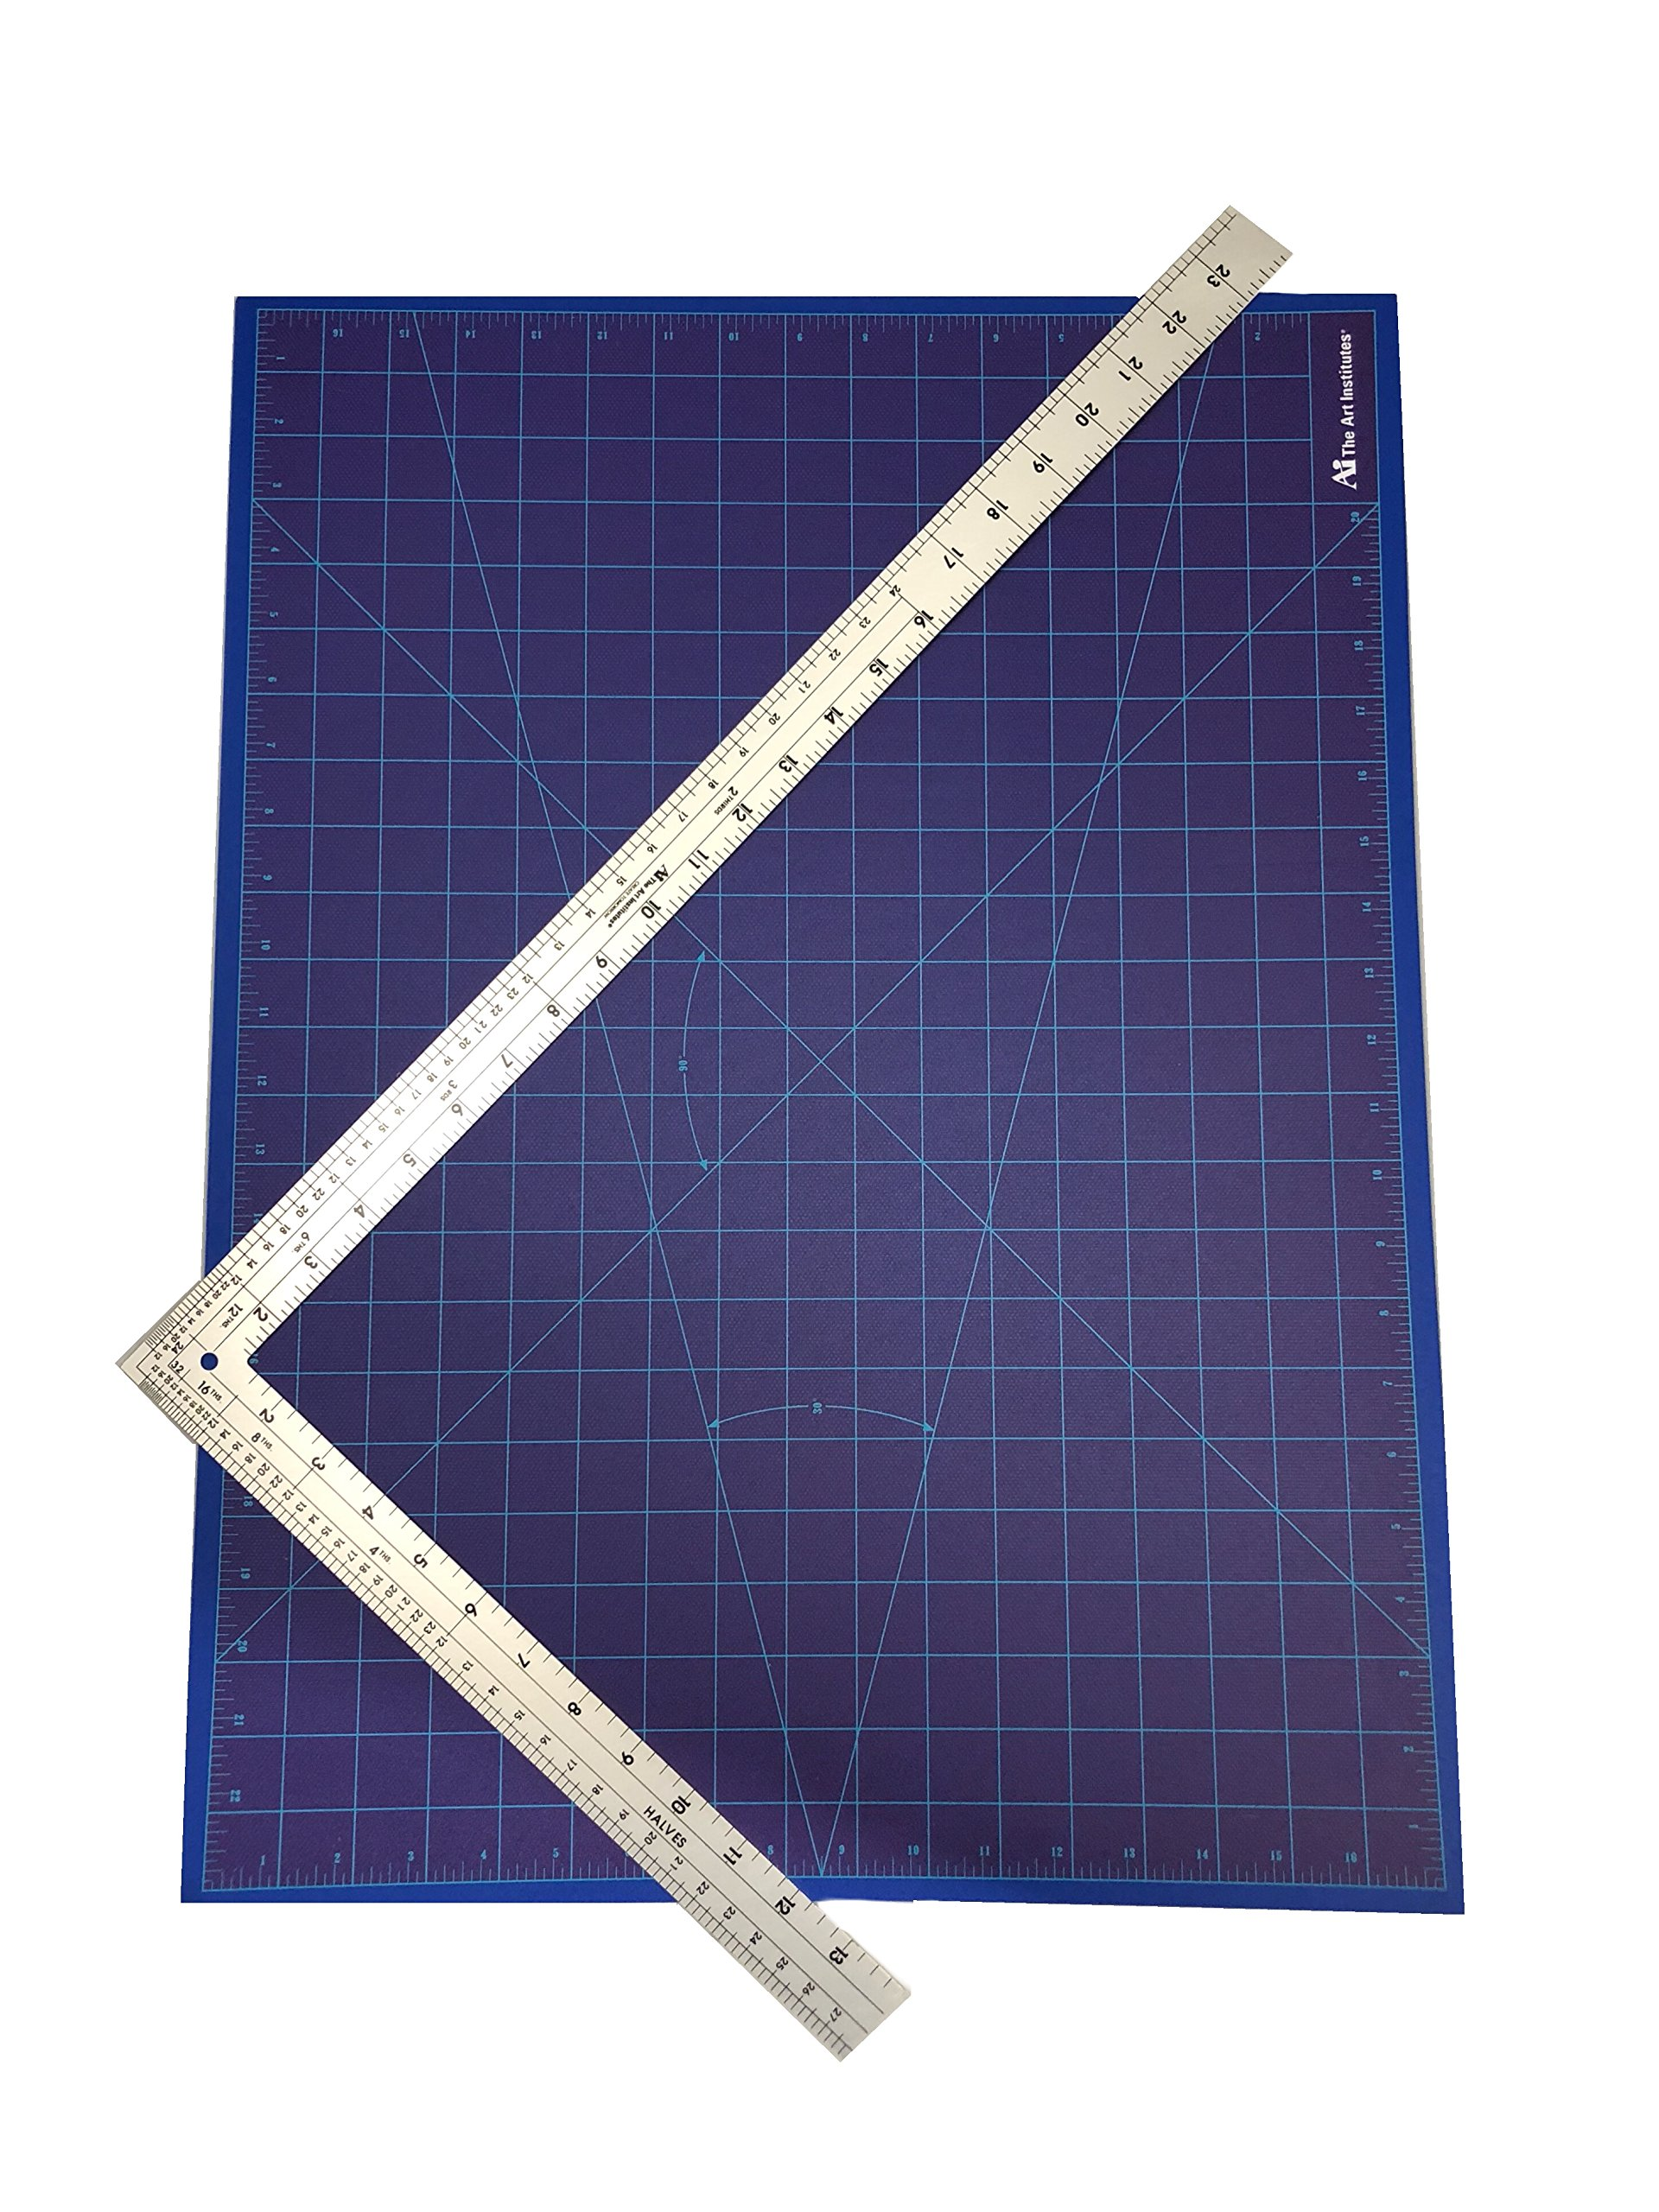 24 x 14 L-Square and 18 x 24 Cutting Mat by Art Institutes